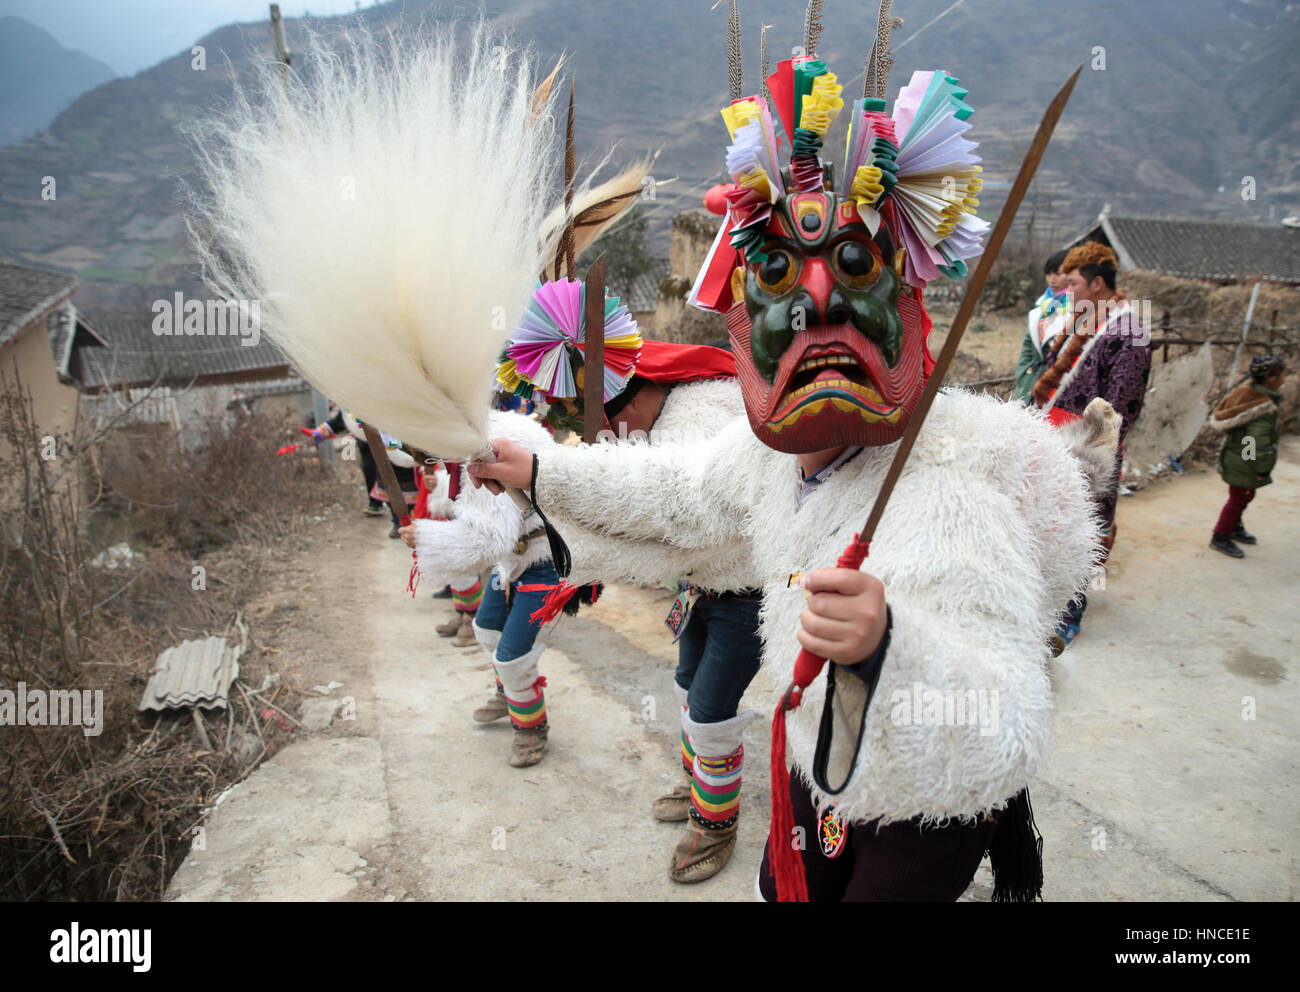 (170212) -- BEIJING, Feb. 12, 2017 (Xinhua) -- Villagers perform Chigezhou, or 'Dance for the Gods of Mountains', - Stock Image